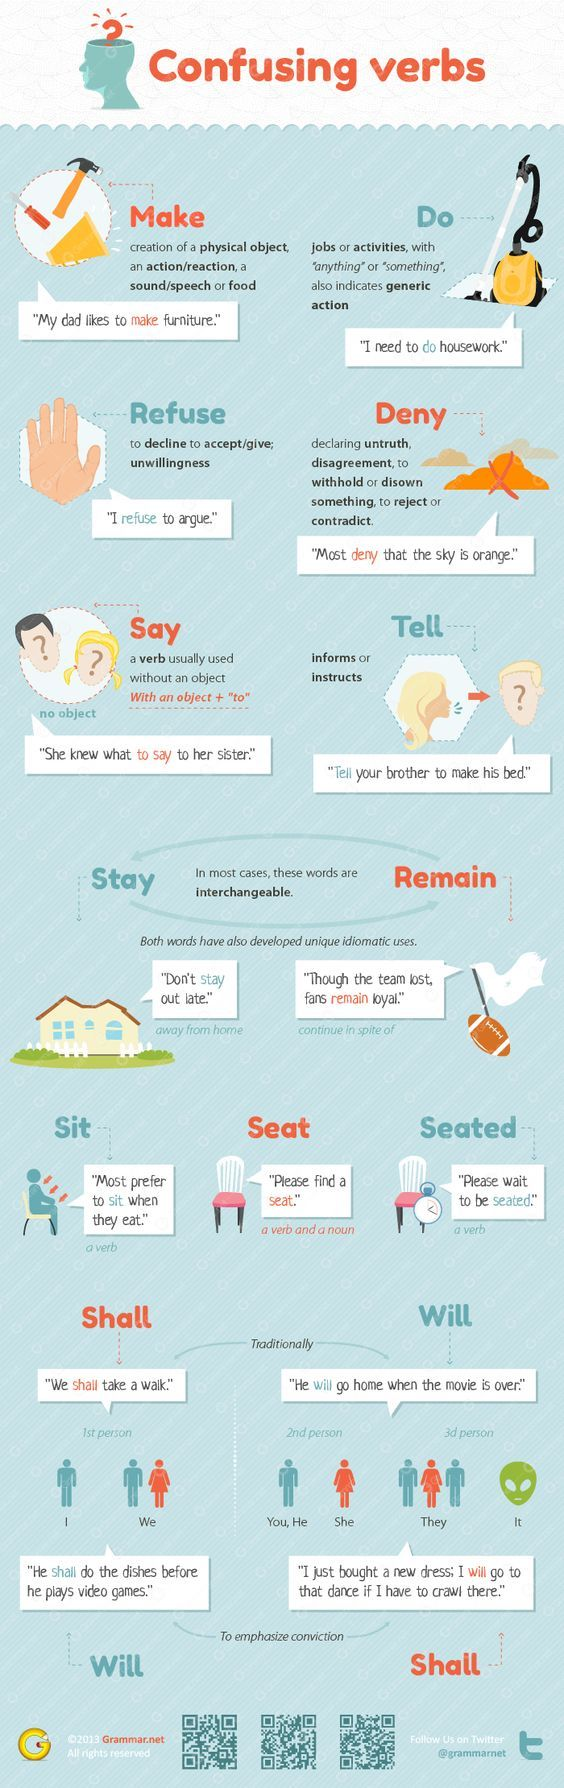 15 Confusing Verbs in English - MyEnglishTeacher.eu:                                                                                                                                                                                 More